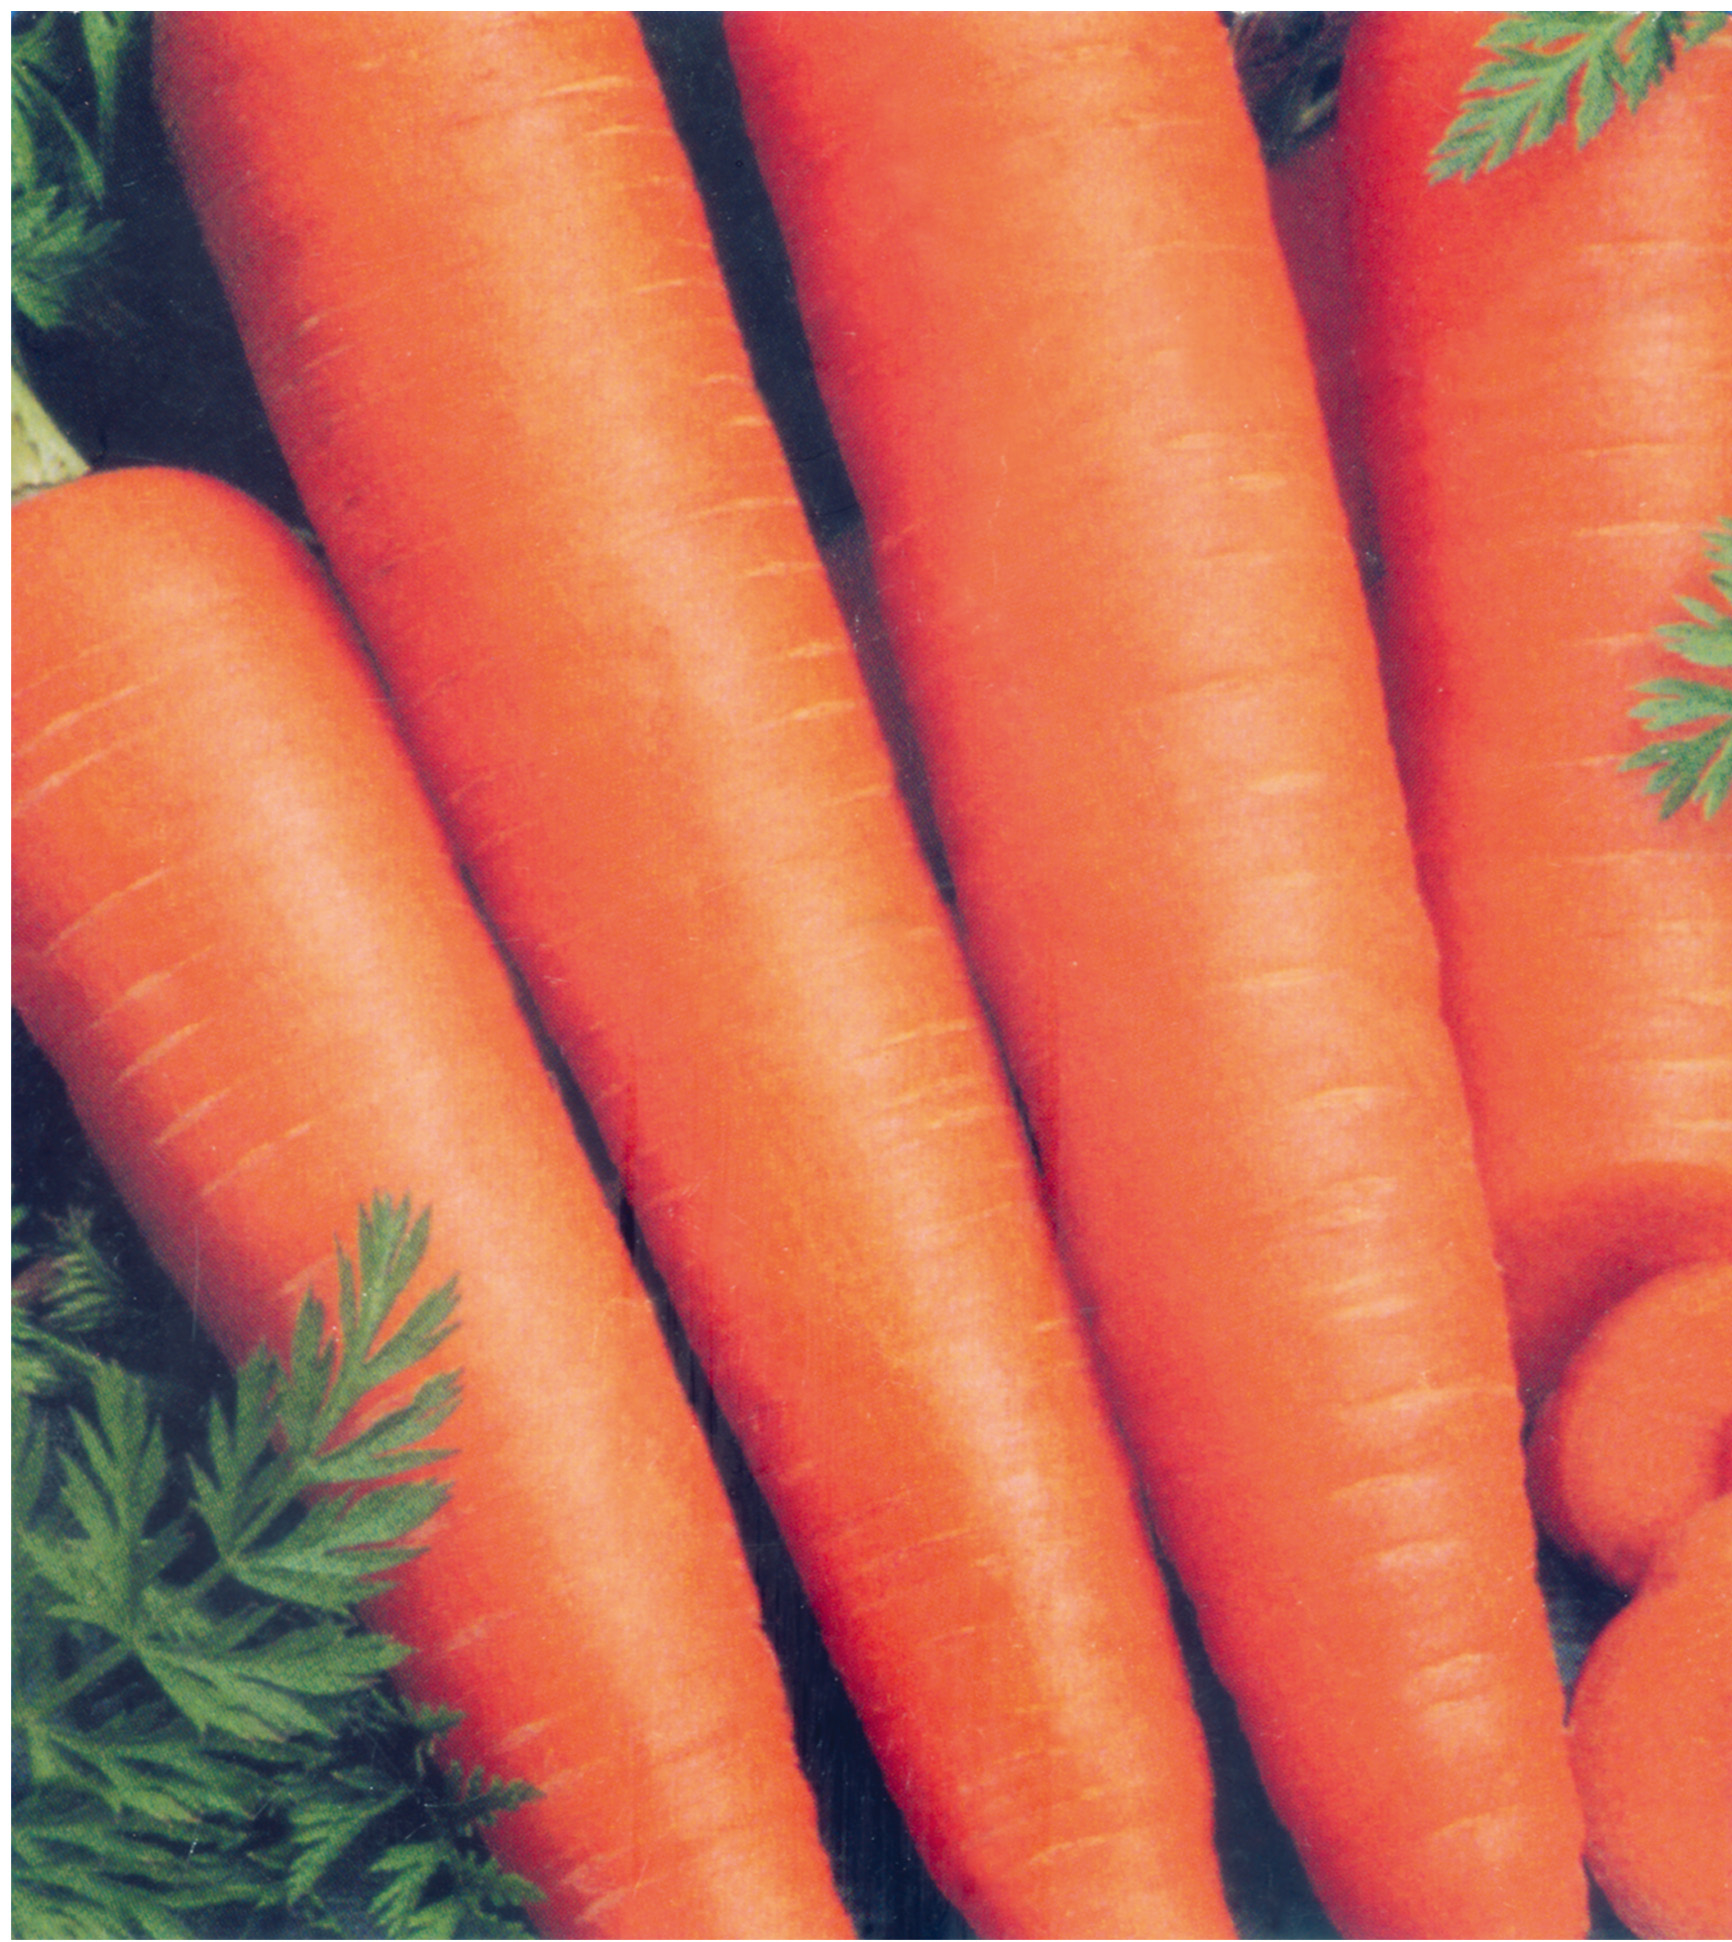 Suntoday new kurode five inch carrot seeds